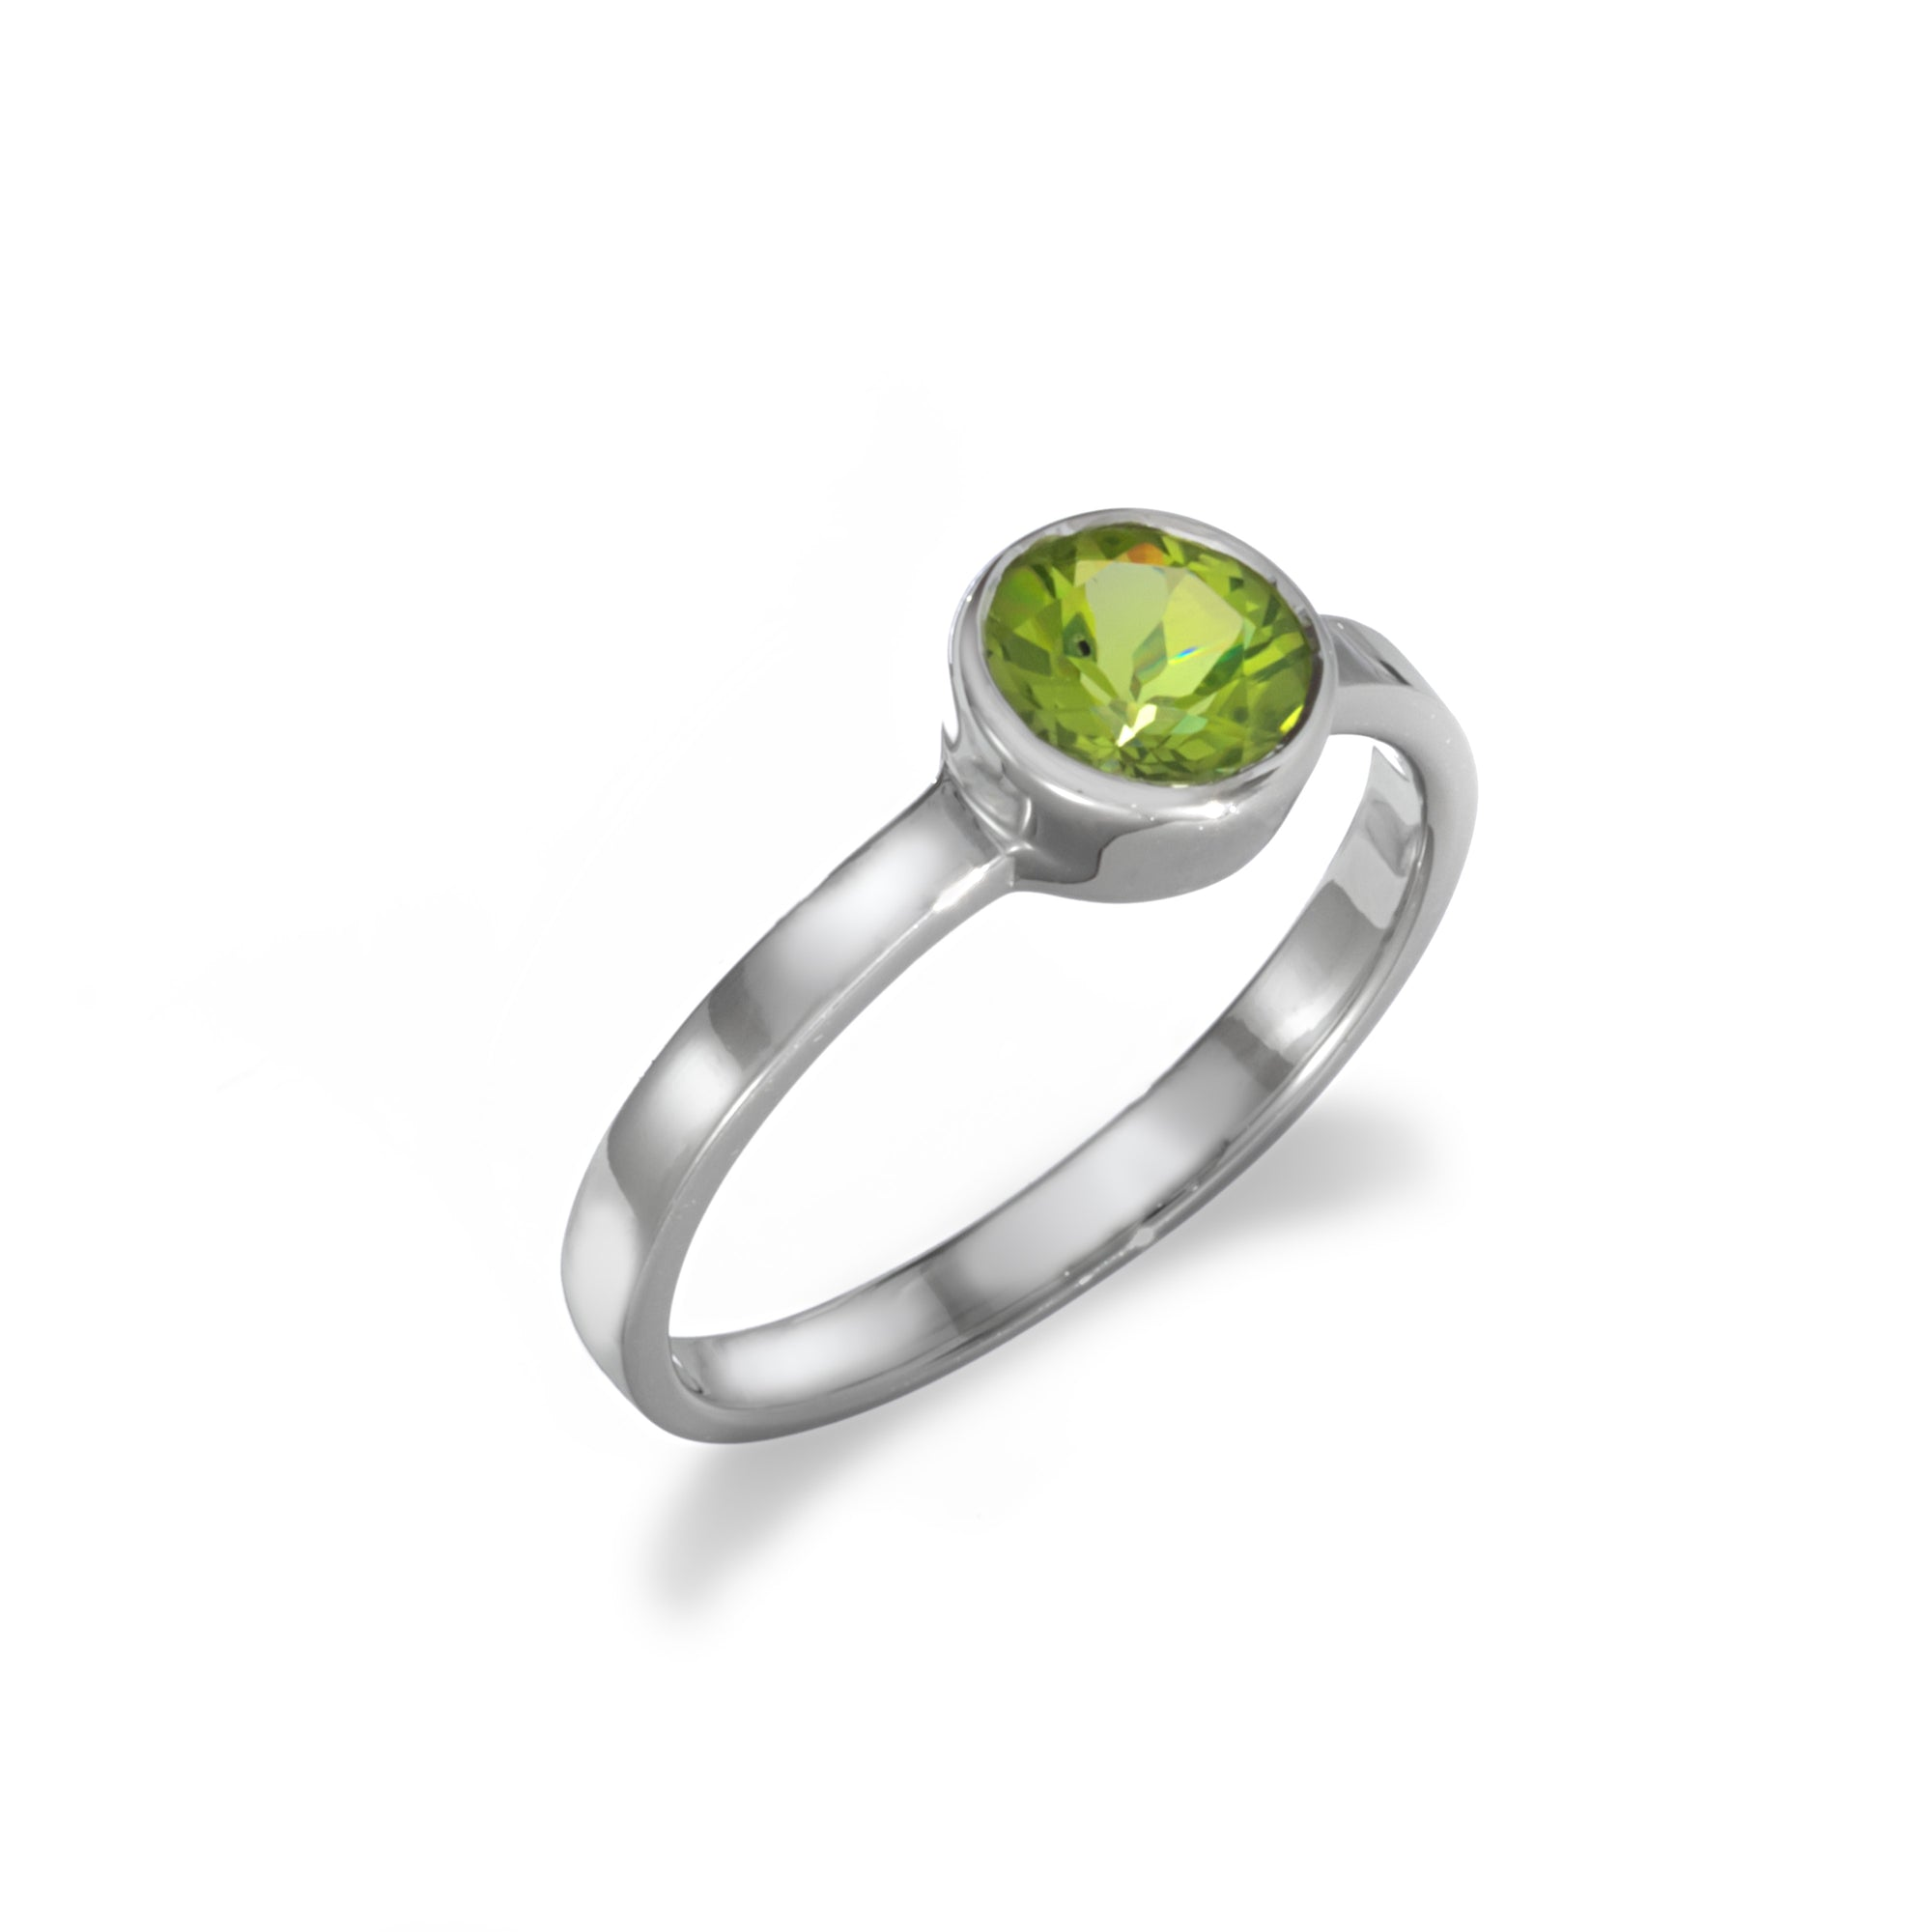 Bezel Set Peridot Solitaire Ring